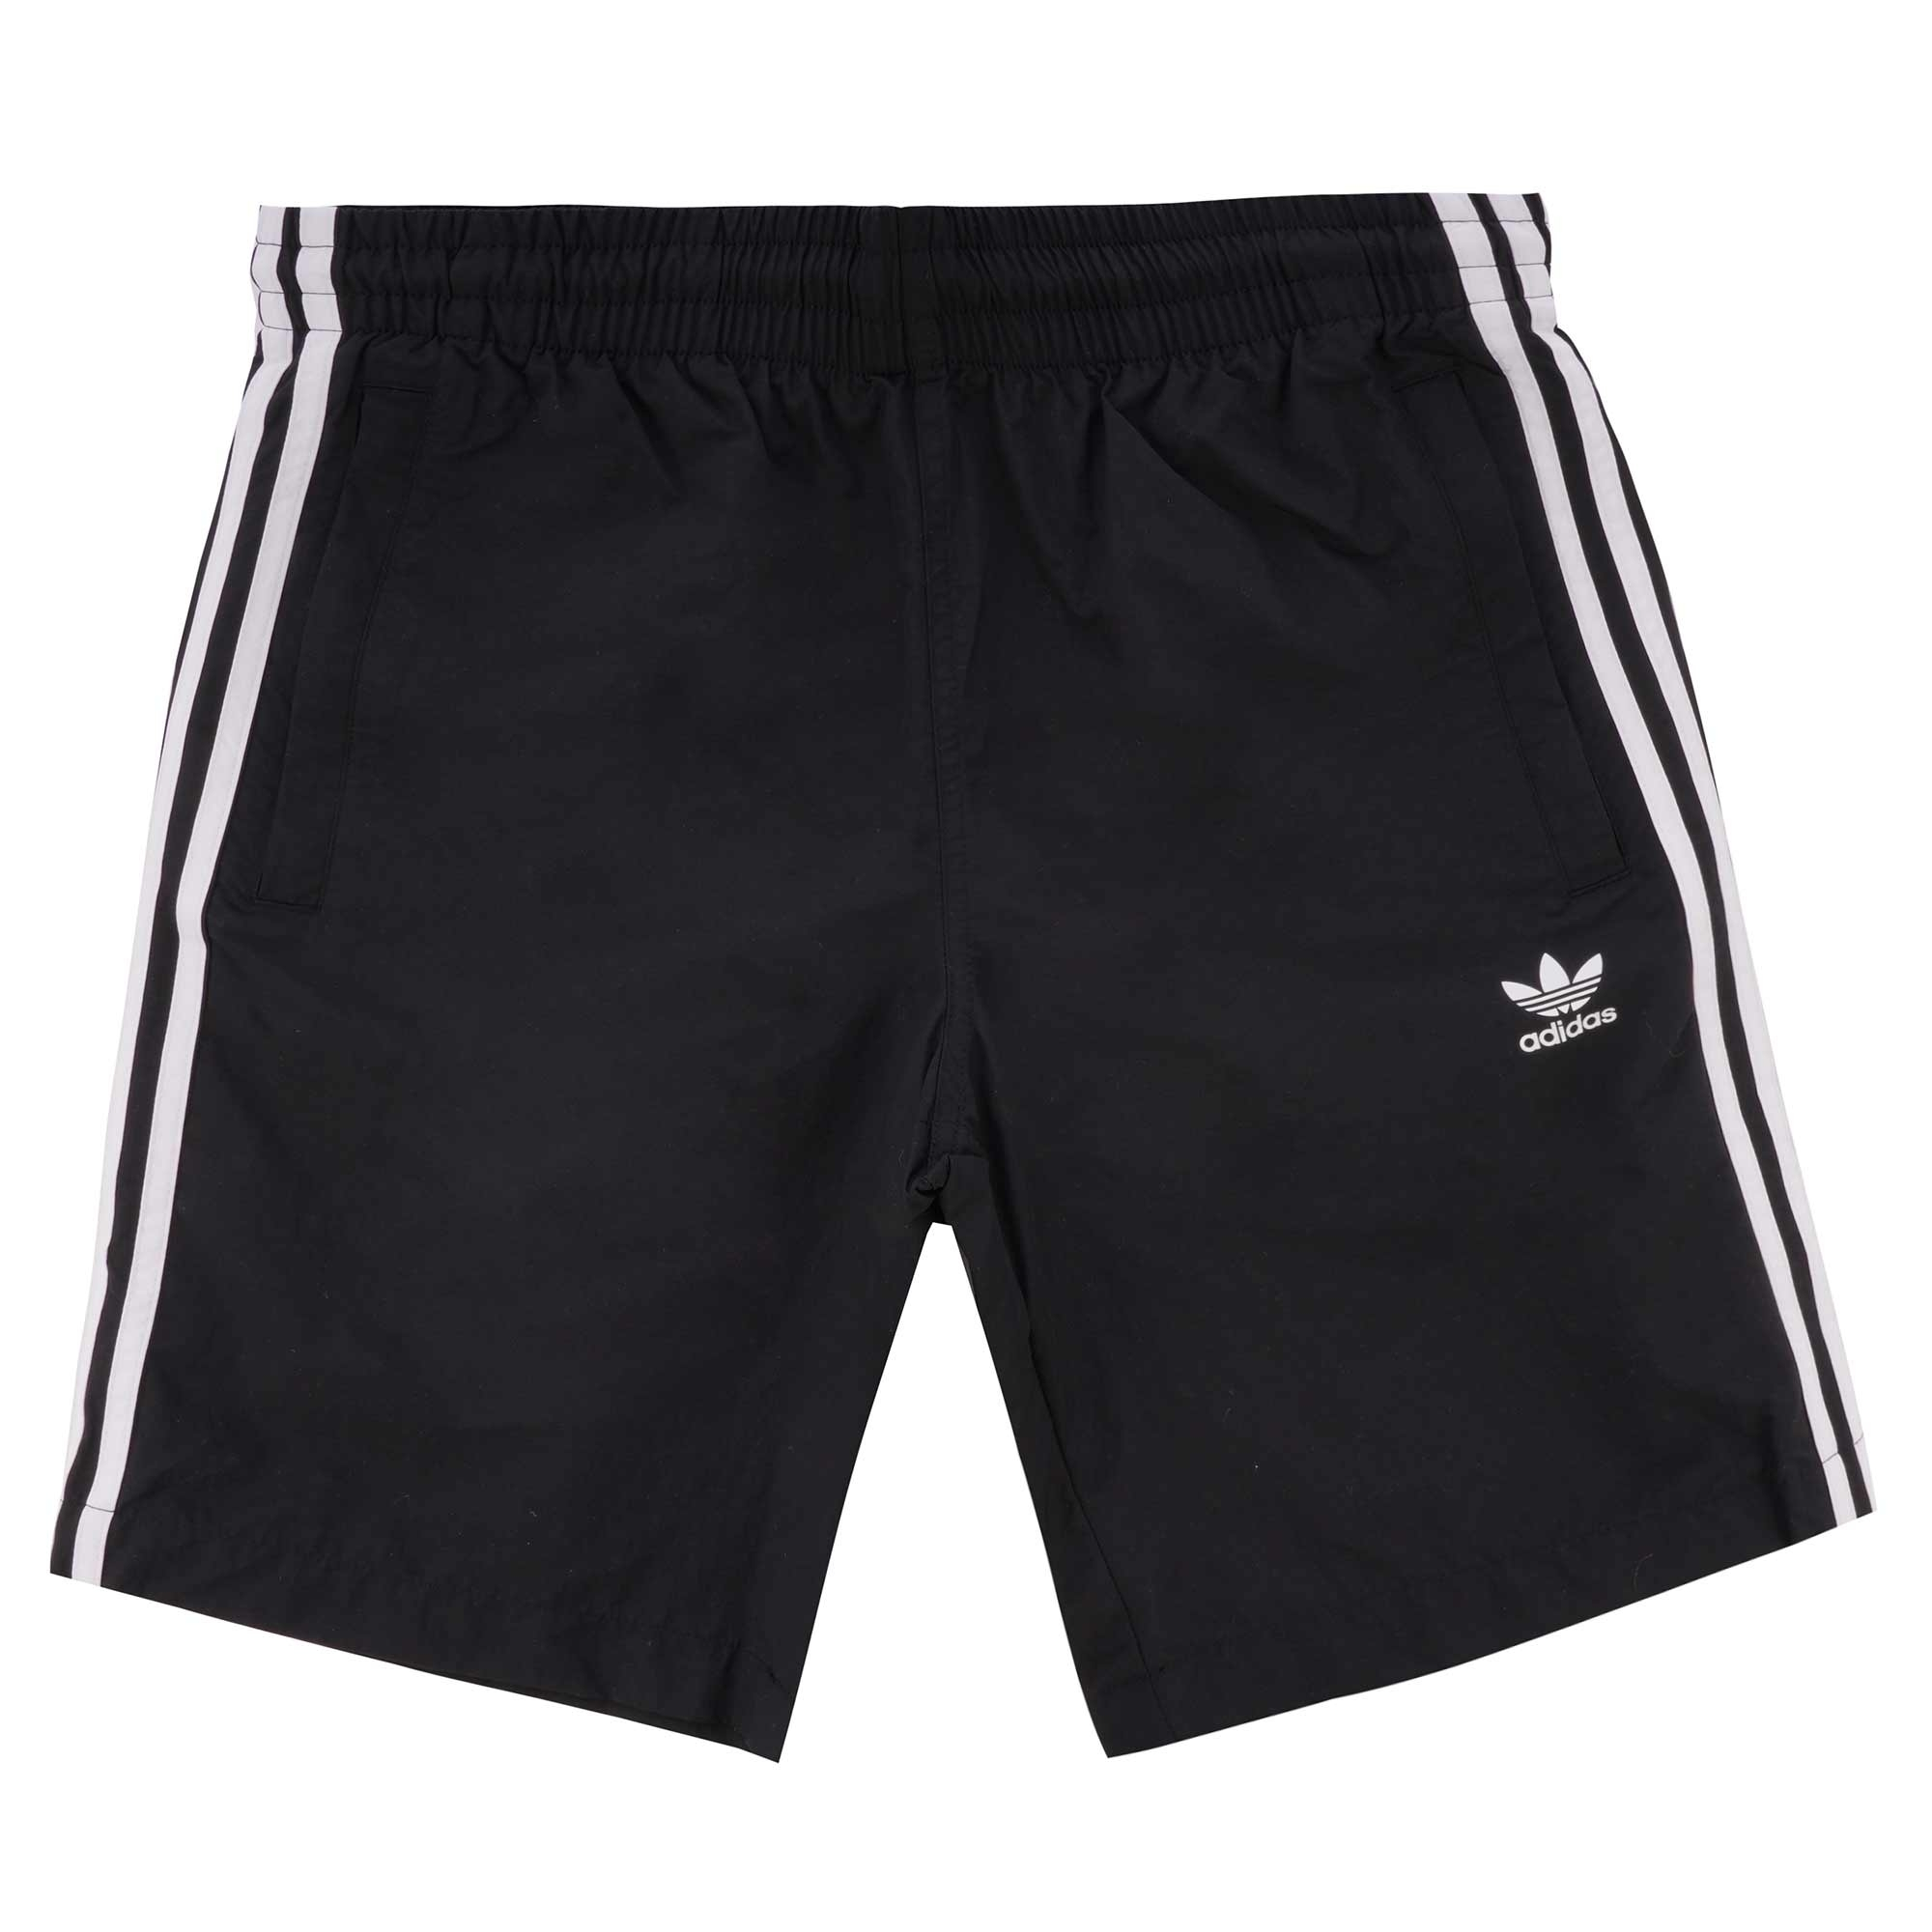 3-stripes shorts adidas originals